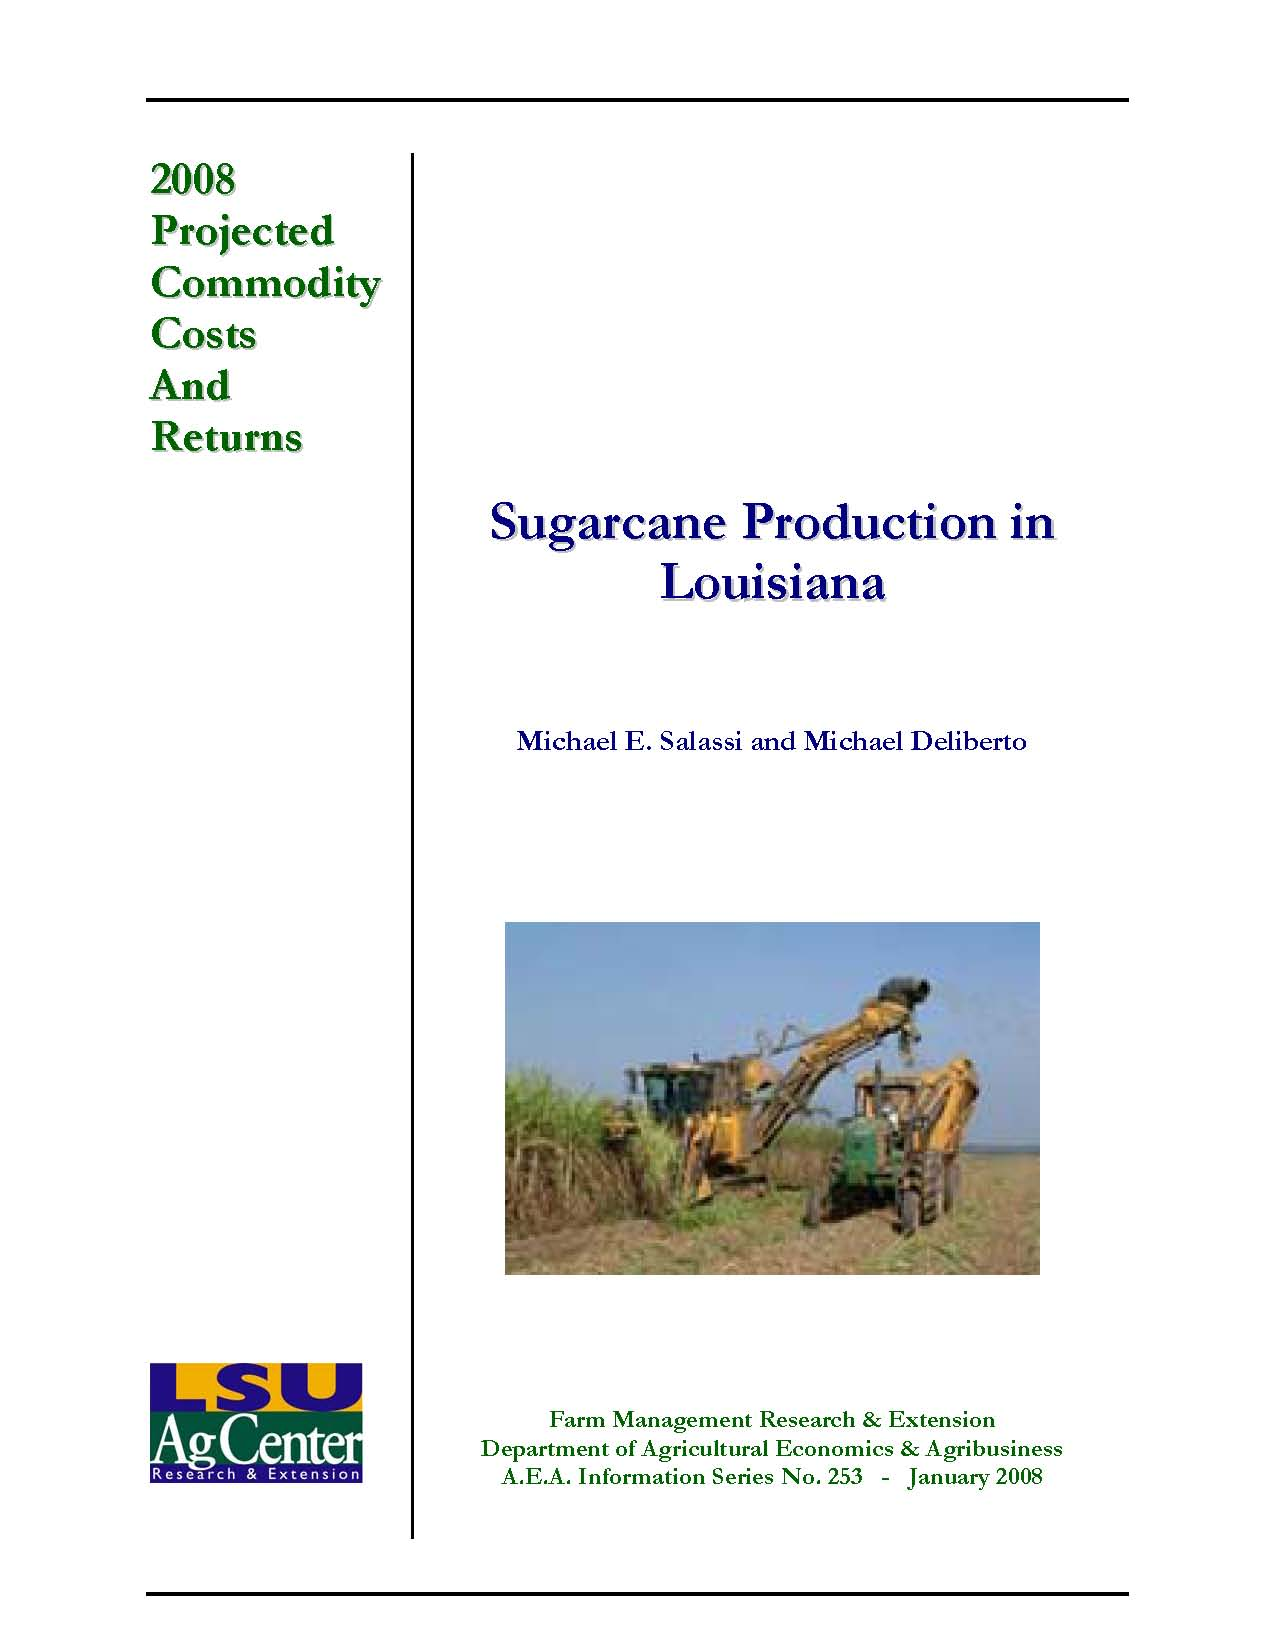 2008 Projected Louisiana Sugarcane Production Costs